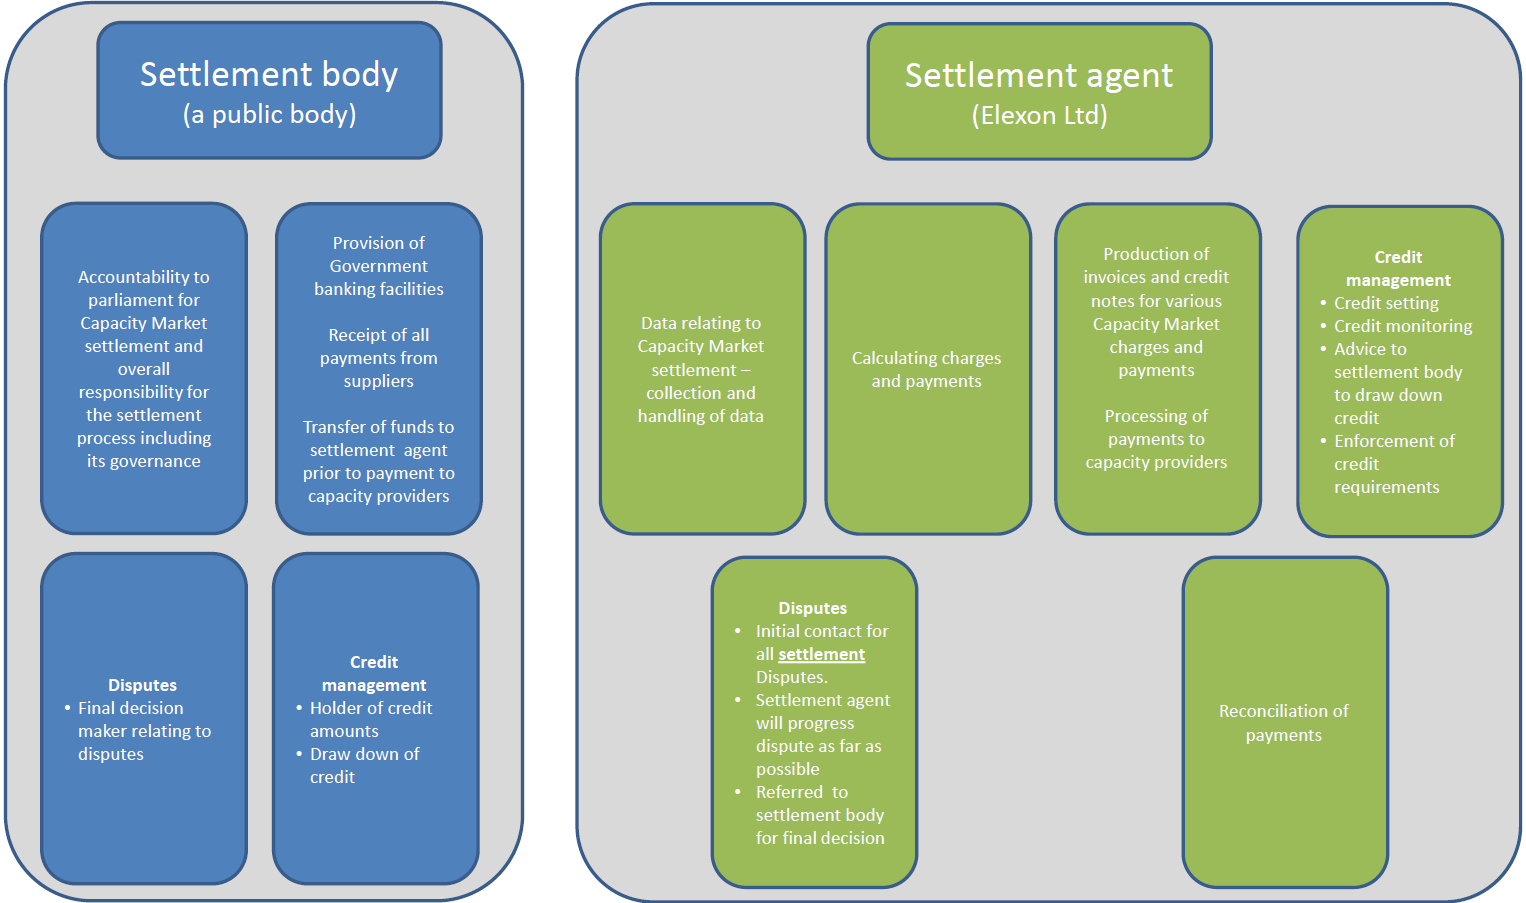 616. A number of specific activities have been identified with regard to the settlement of the Capacity Market.